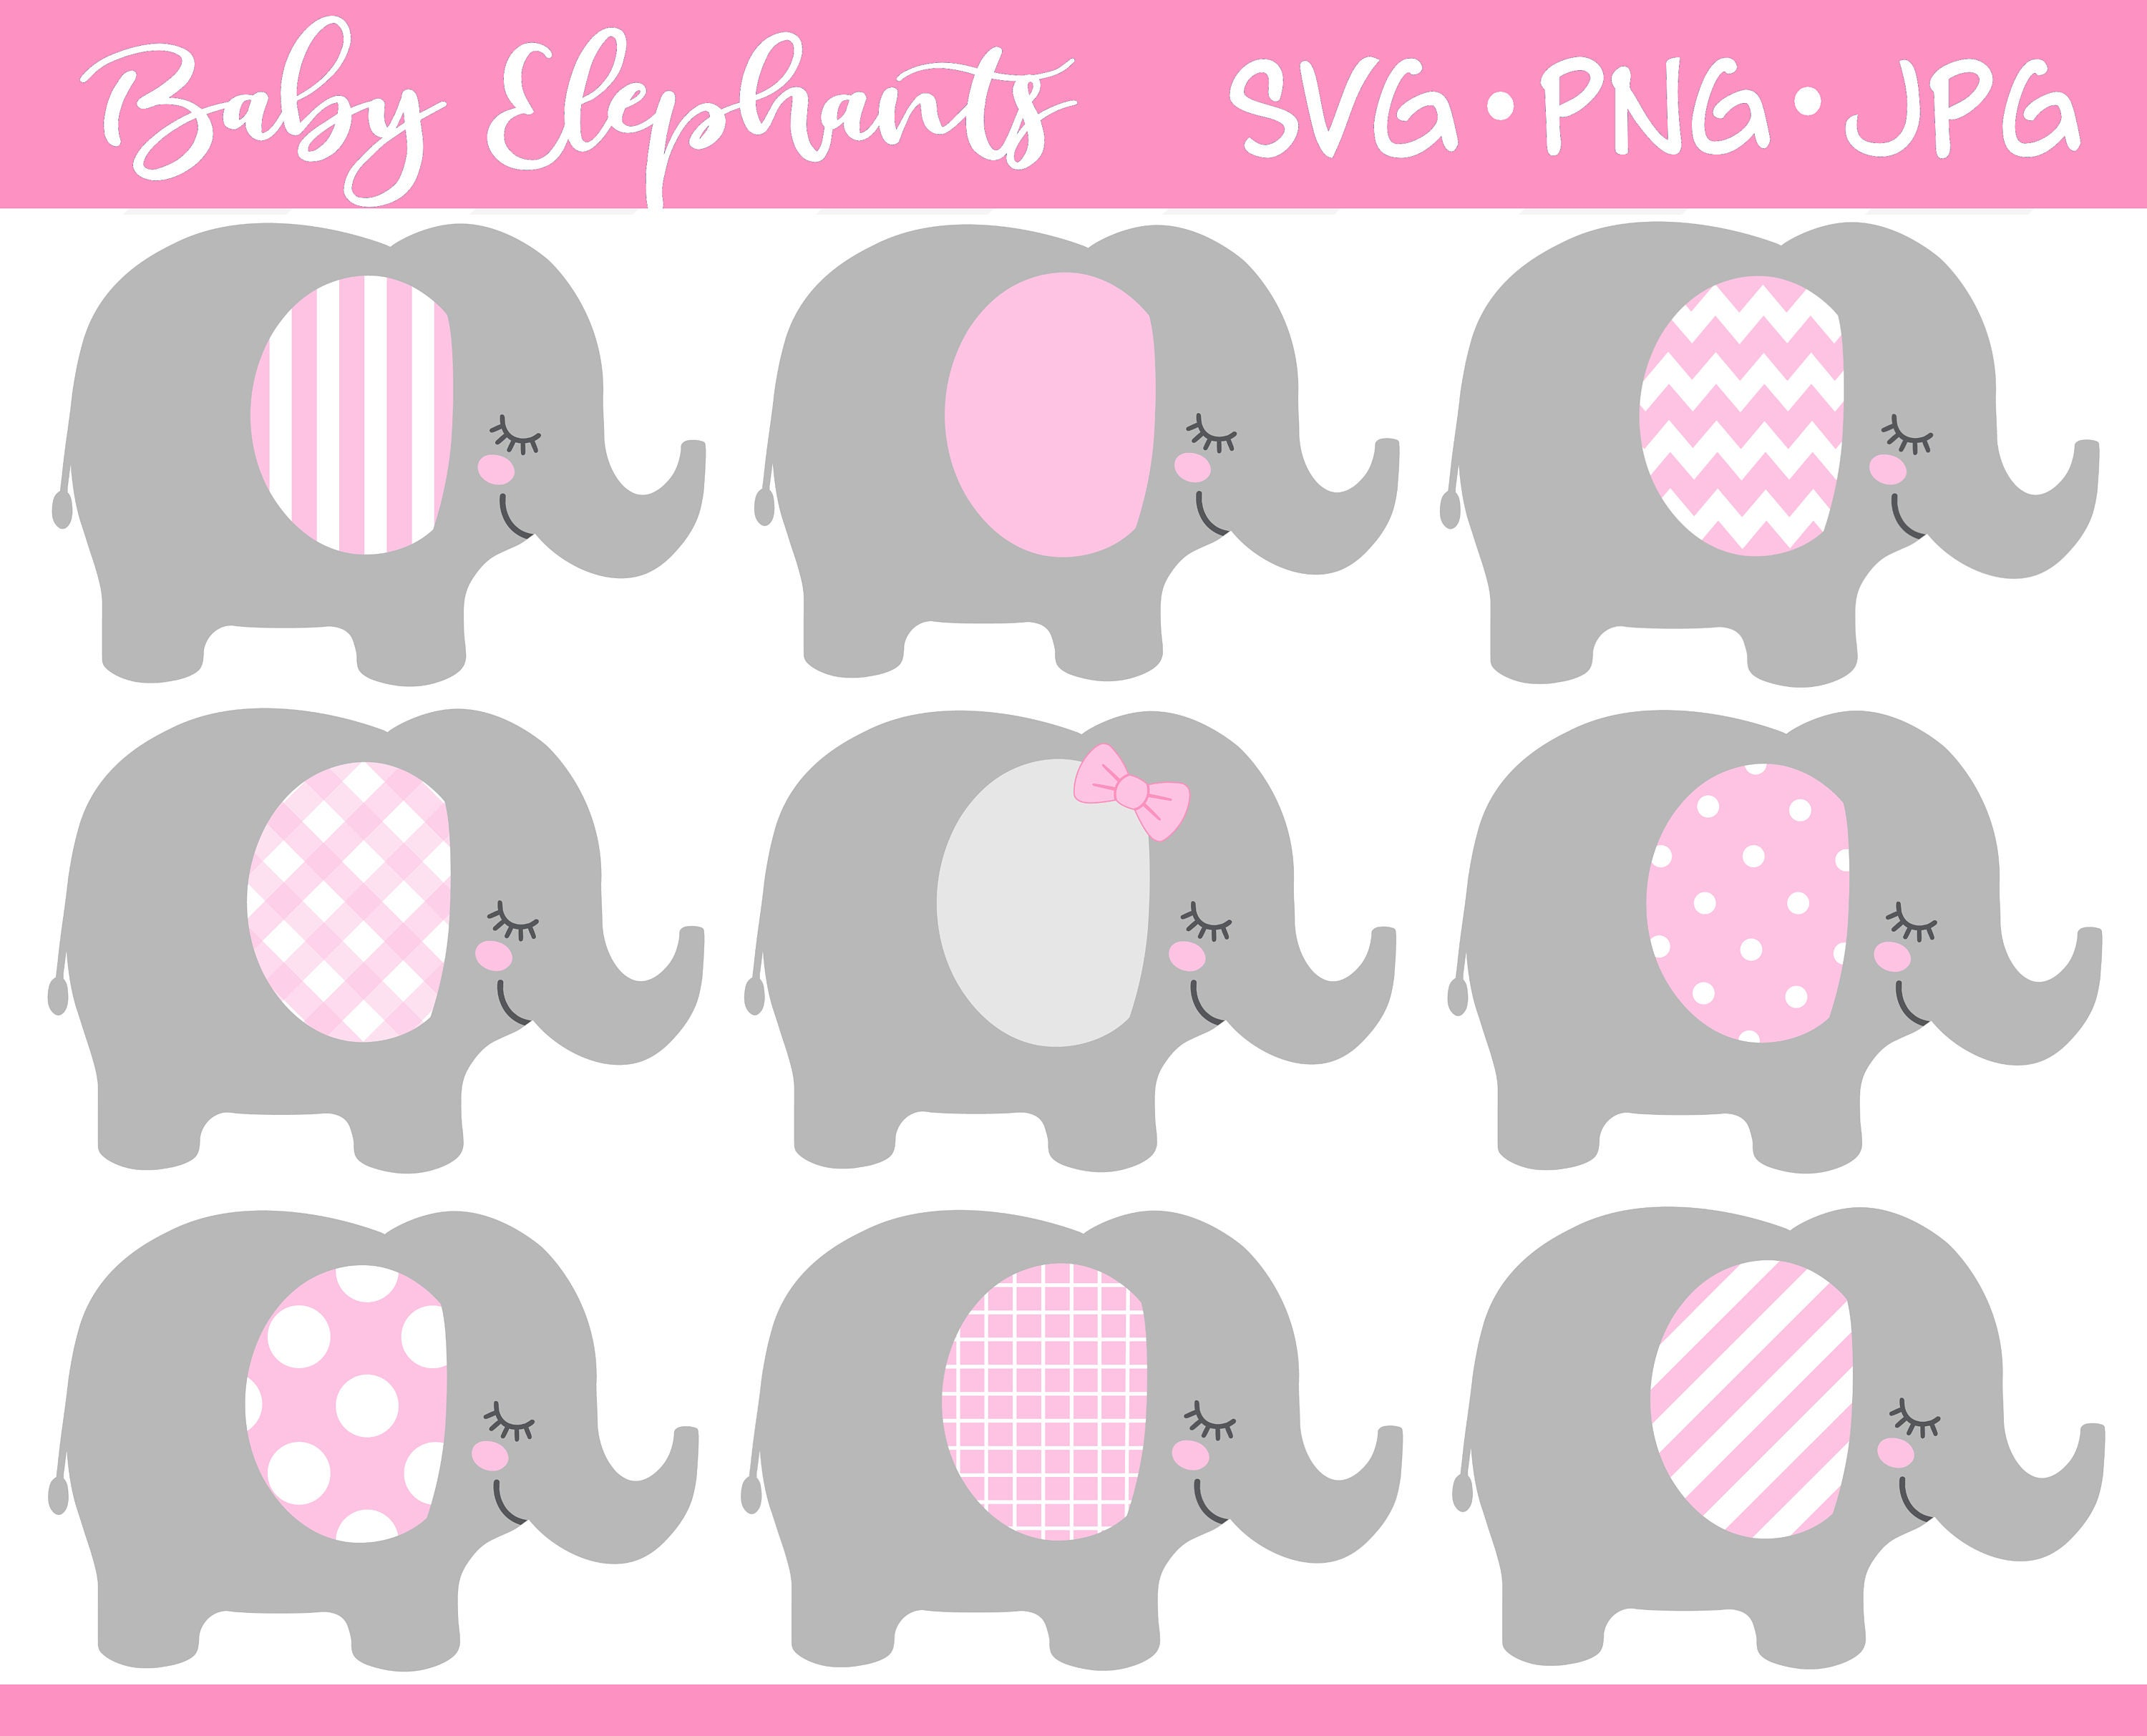 Baby Elephant SVG pink gray elephant clipart baby shower